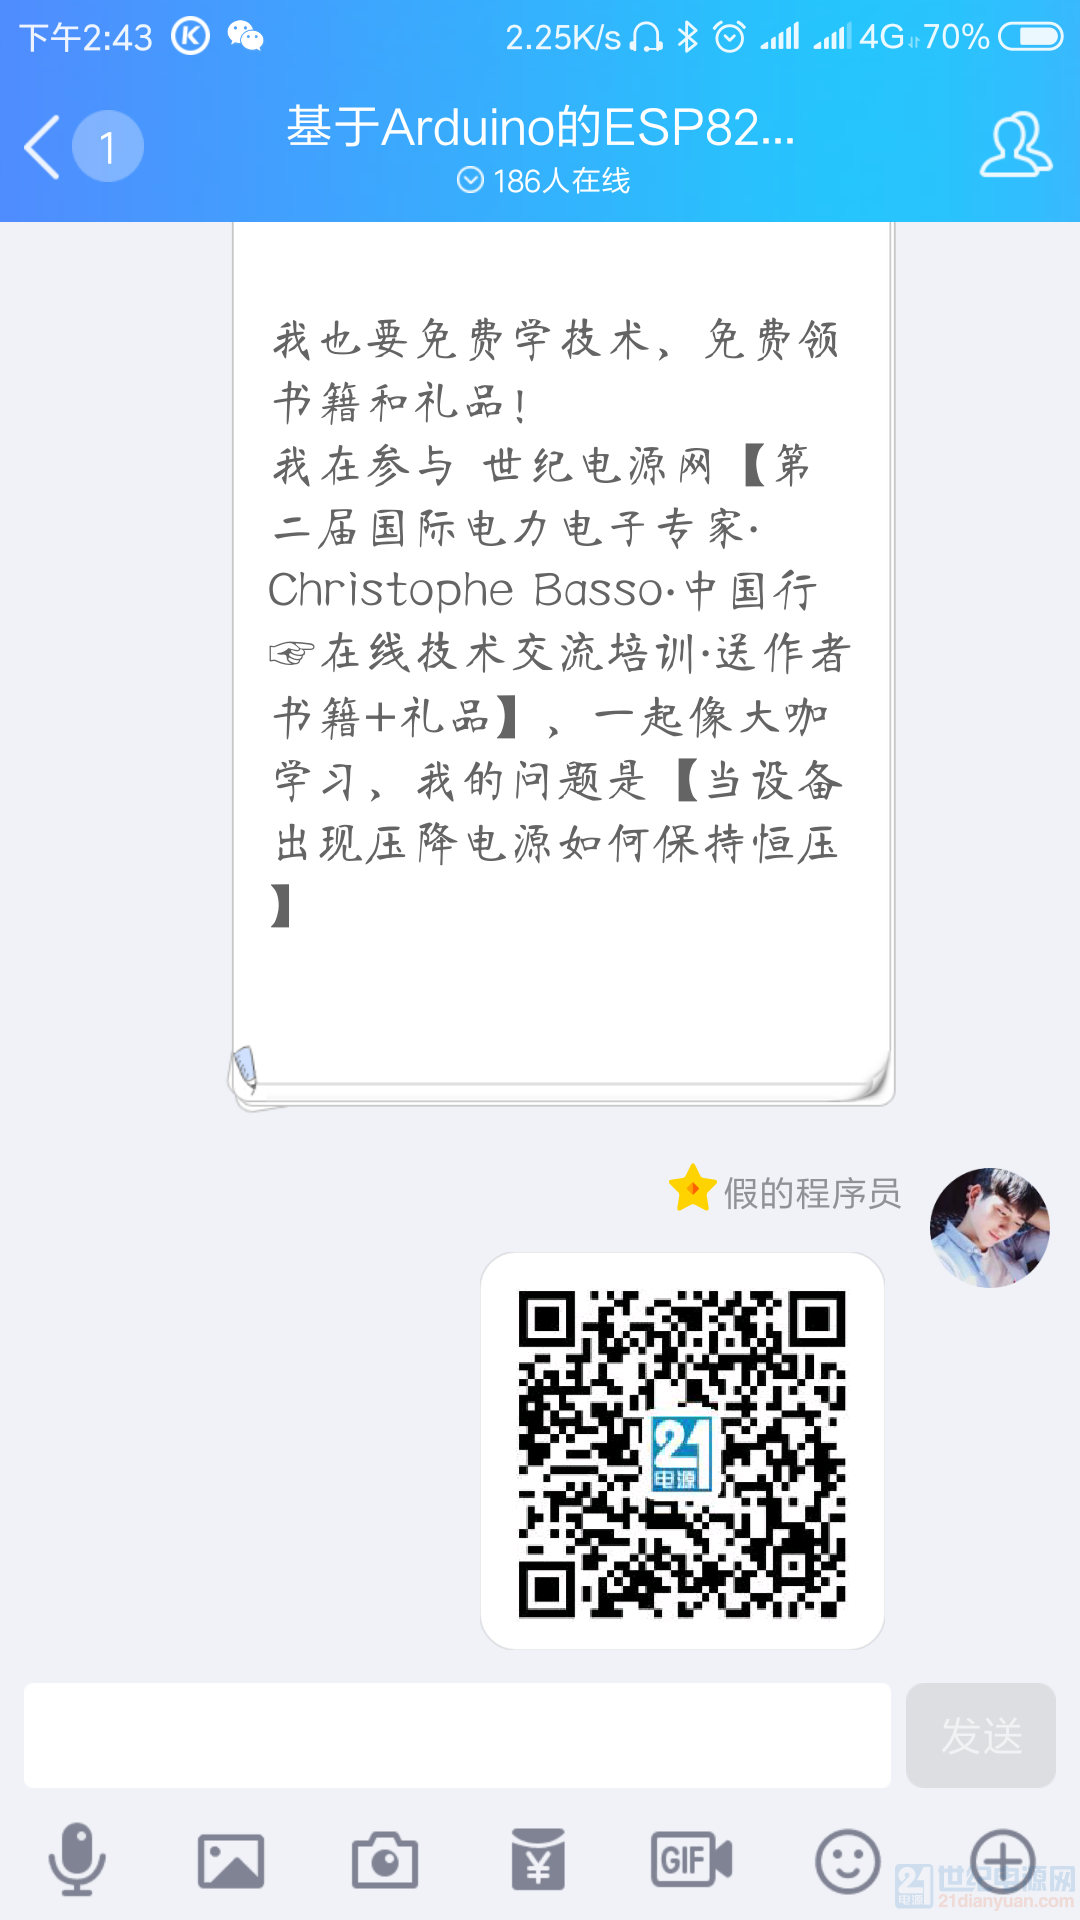 Screenshot_2018-10-12-14-43-40-396_com.tencent.mobileqq.png